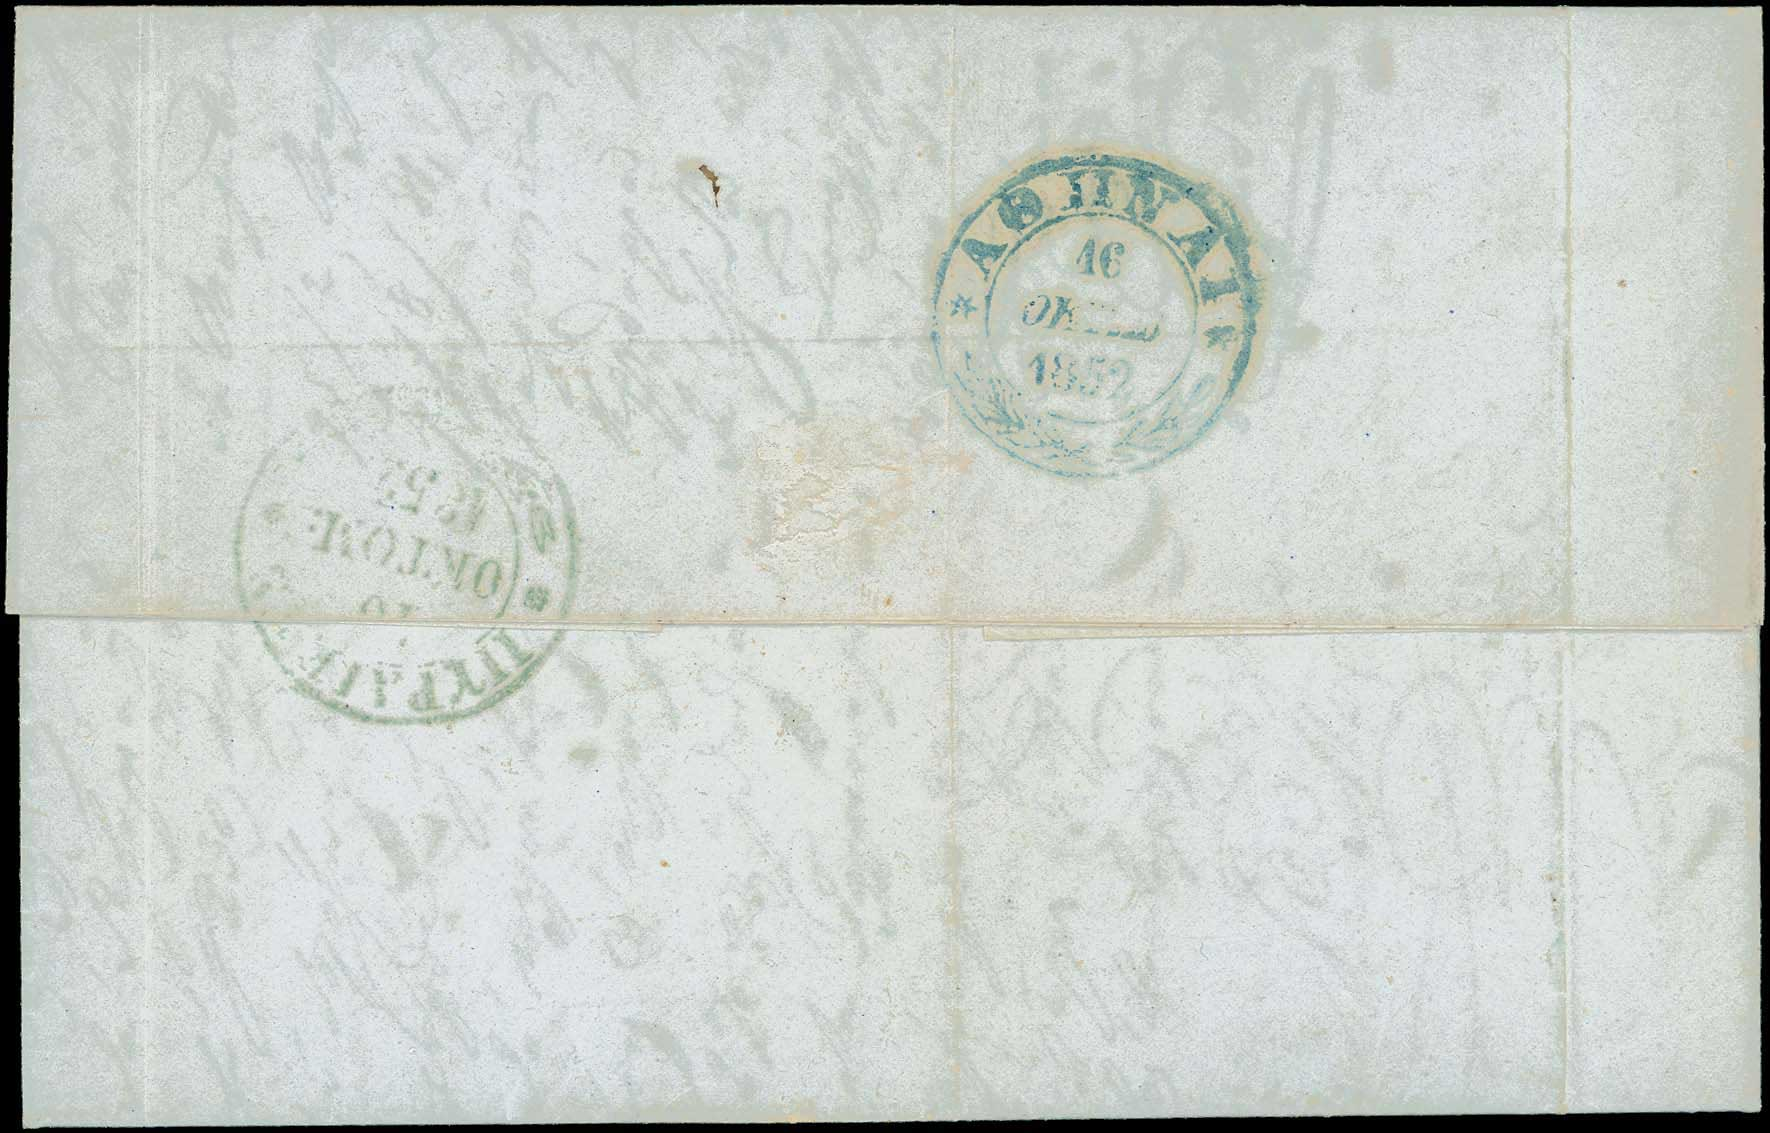 Lot 924 - -  POSTMARKS & CANCELLATIONS Pre-adhesive cancellations -  A. Karamitsos Public Auction 645 General Stamp Sale